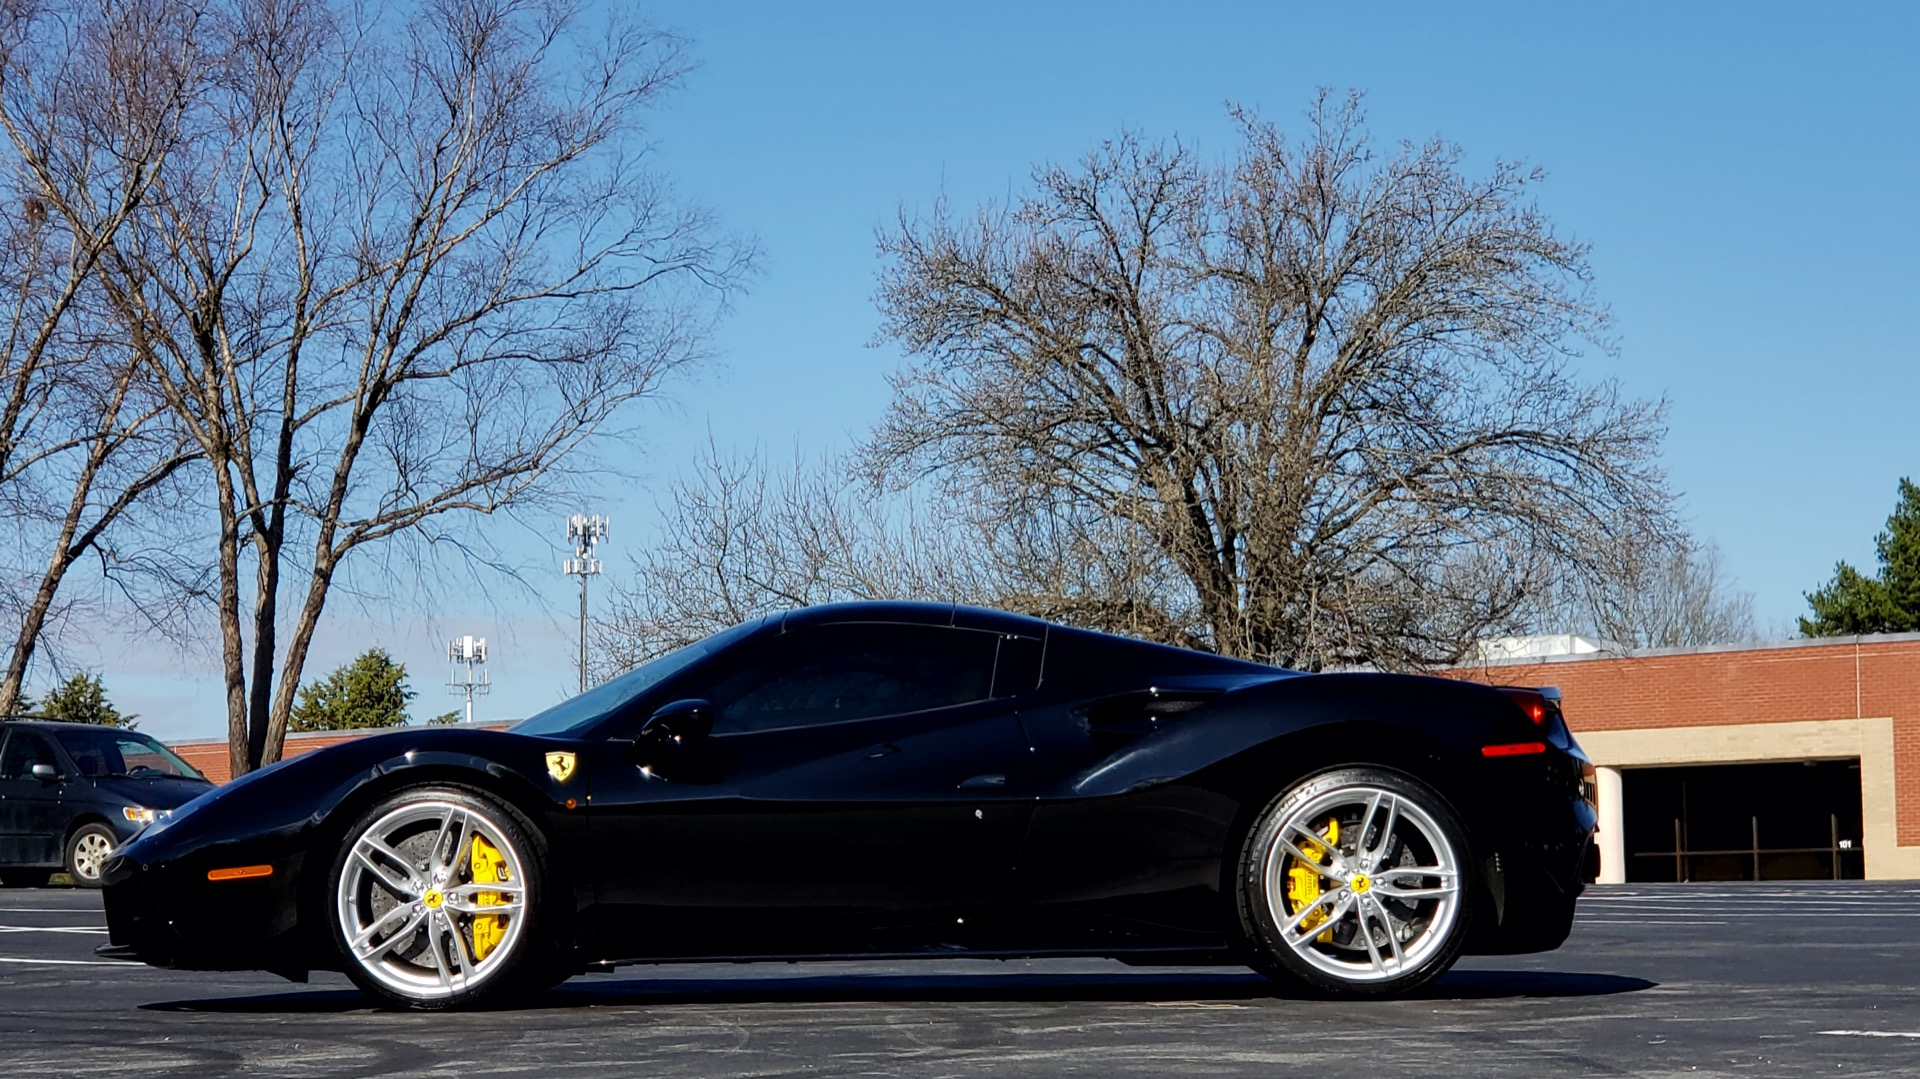 Used 2017 Ferrari 488 Spider SUSP LFT / JBL SND / SPRT EXH / F1 TRANS for sale $315,000 at Formula Imports in Charlotte NC 28227 6